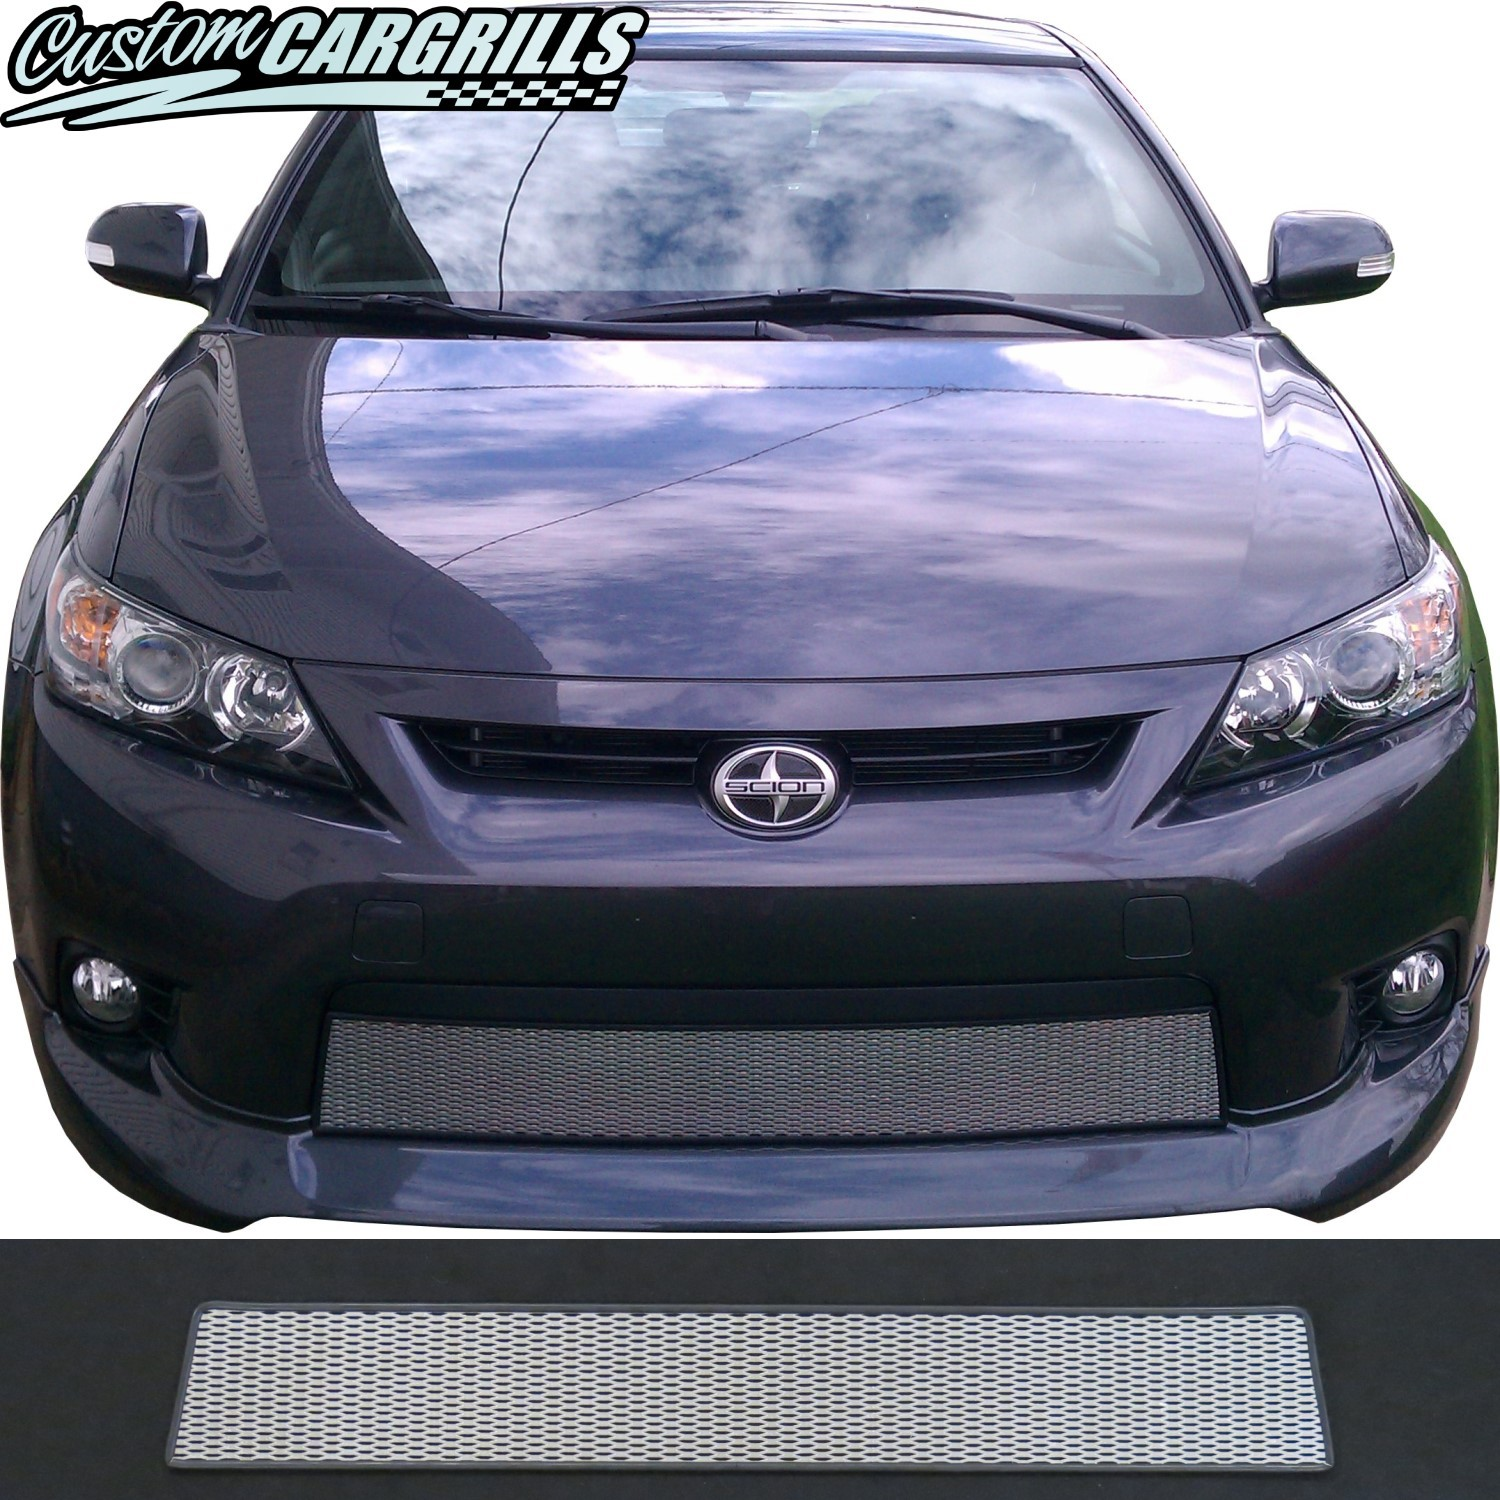 2011-13 Scion TC Mesh Grill Kit